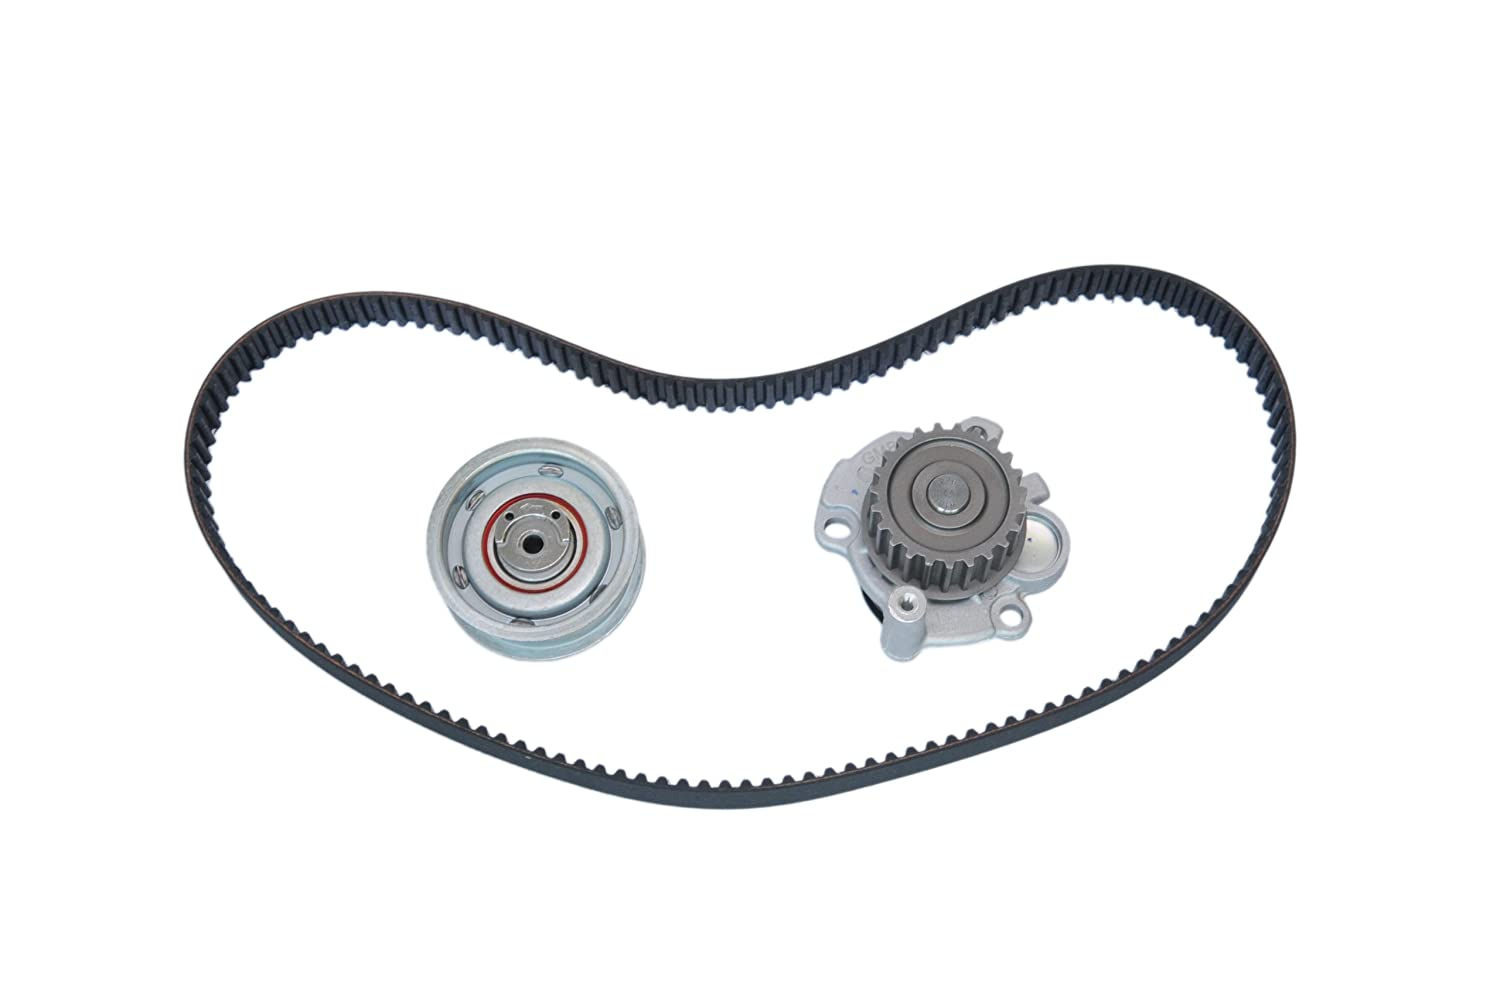 With Water Pump Continental GTKWP296 Timing Belt Component Kit